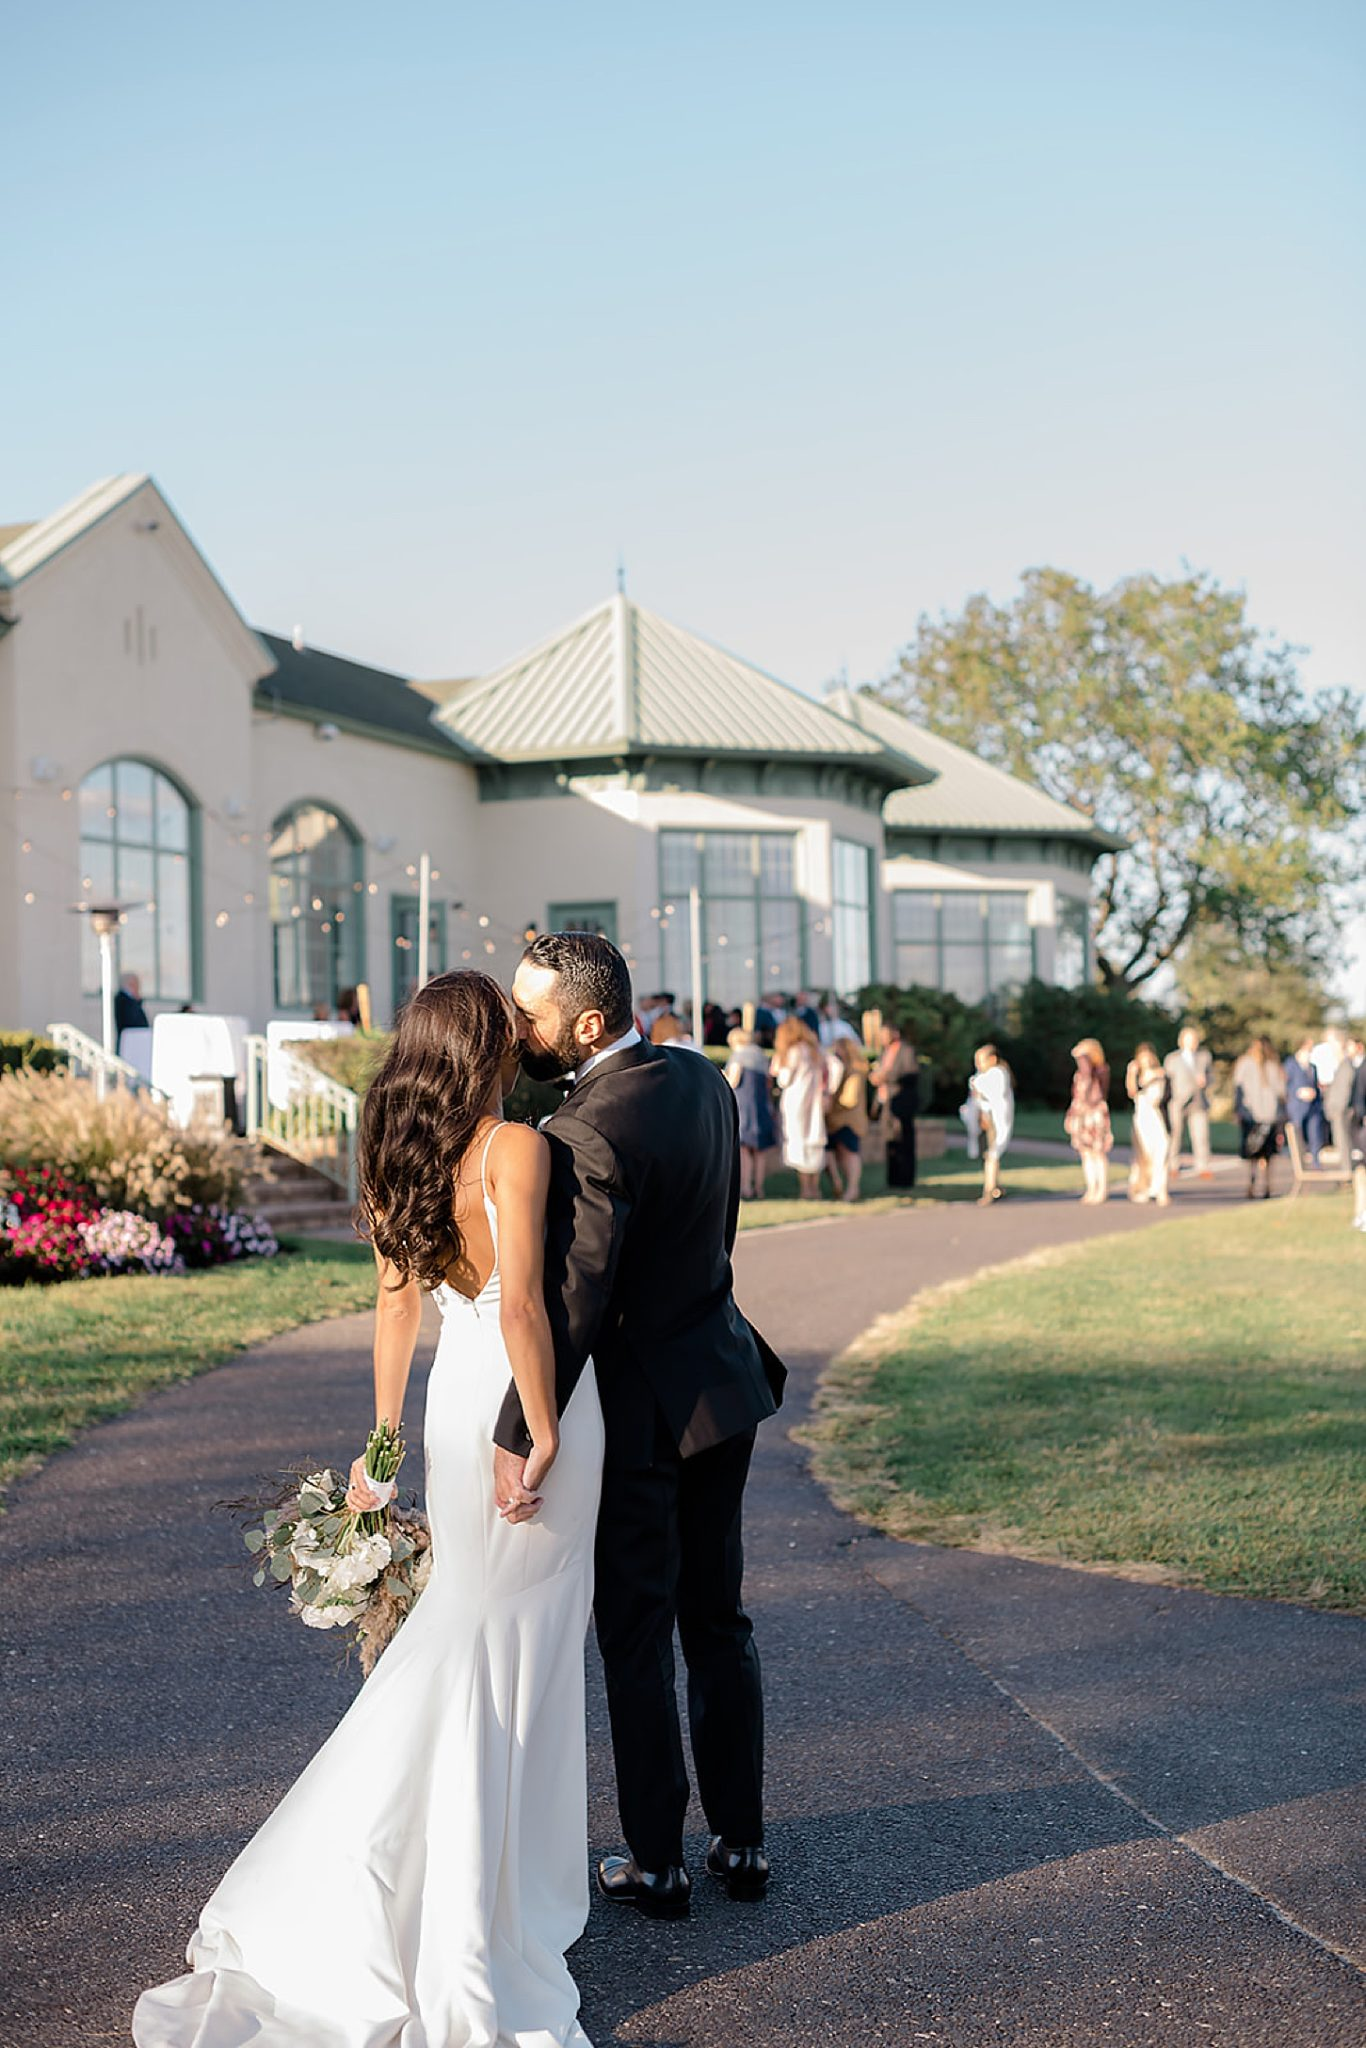 Linwood Country Club Wedding Photography by Magdalena Studios 0022 scaled